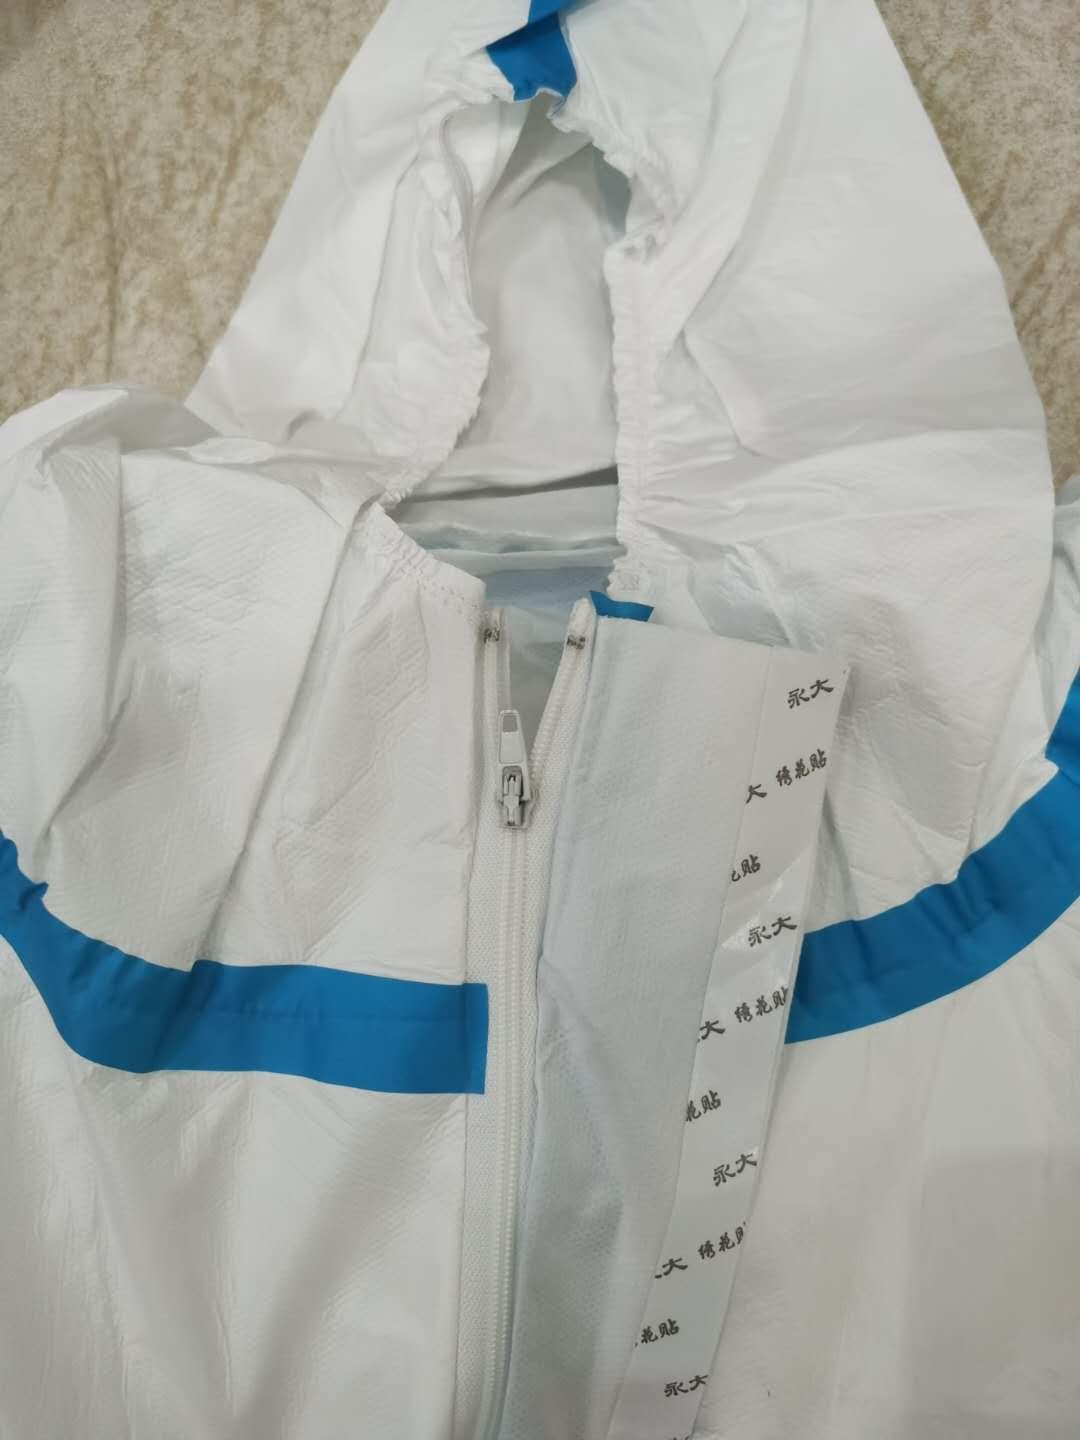 Medical  Isolation Gown Disposable Coverall Nonwoven SMS Virus Protection Suit 3